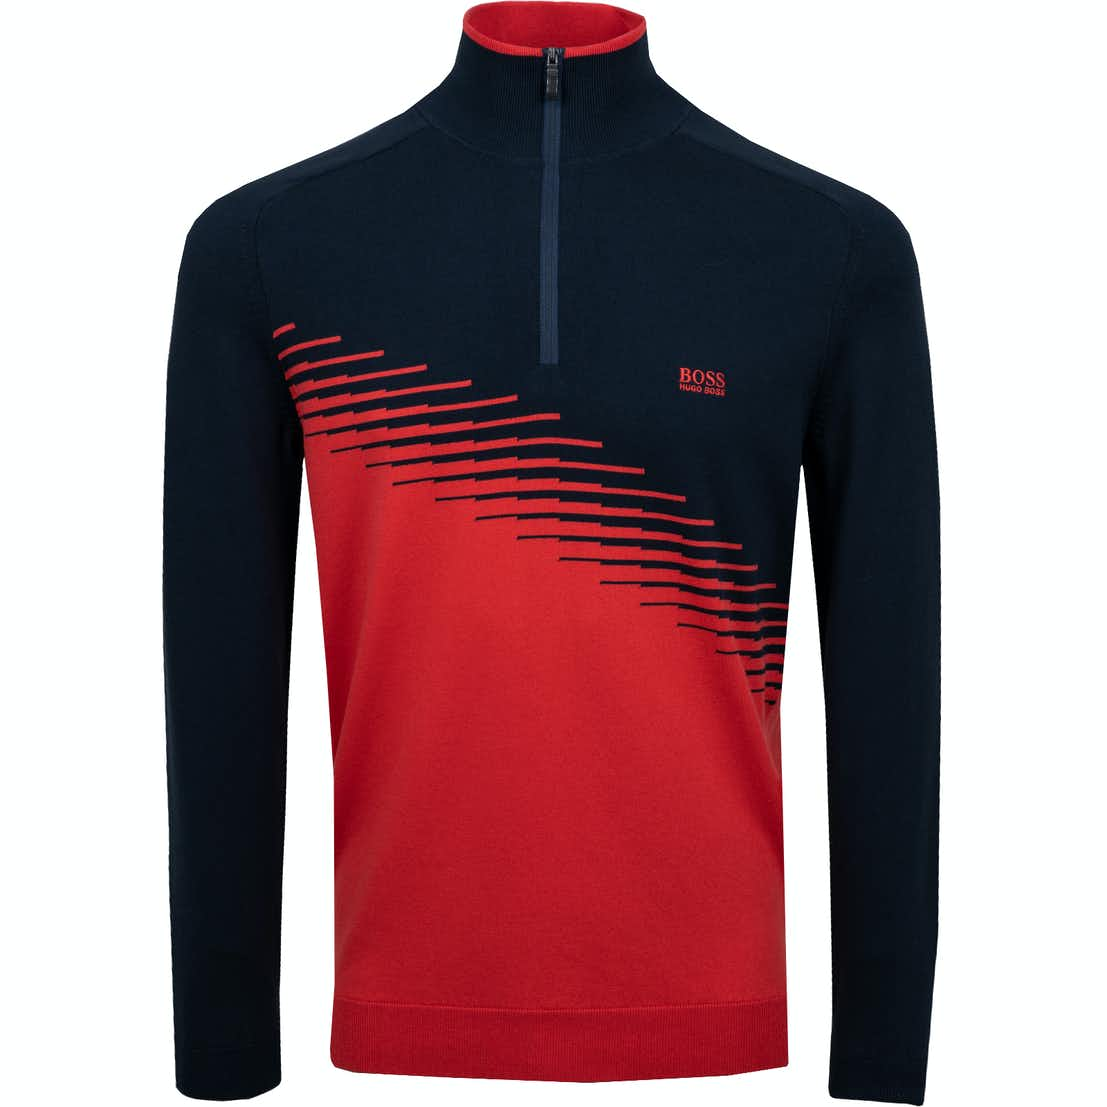 The Open BOSS 1/4-Zip Sweater - Red and Black